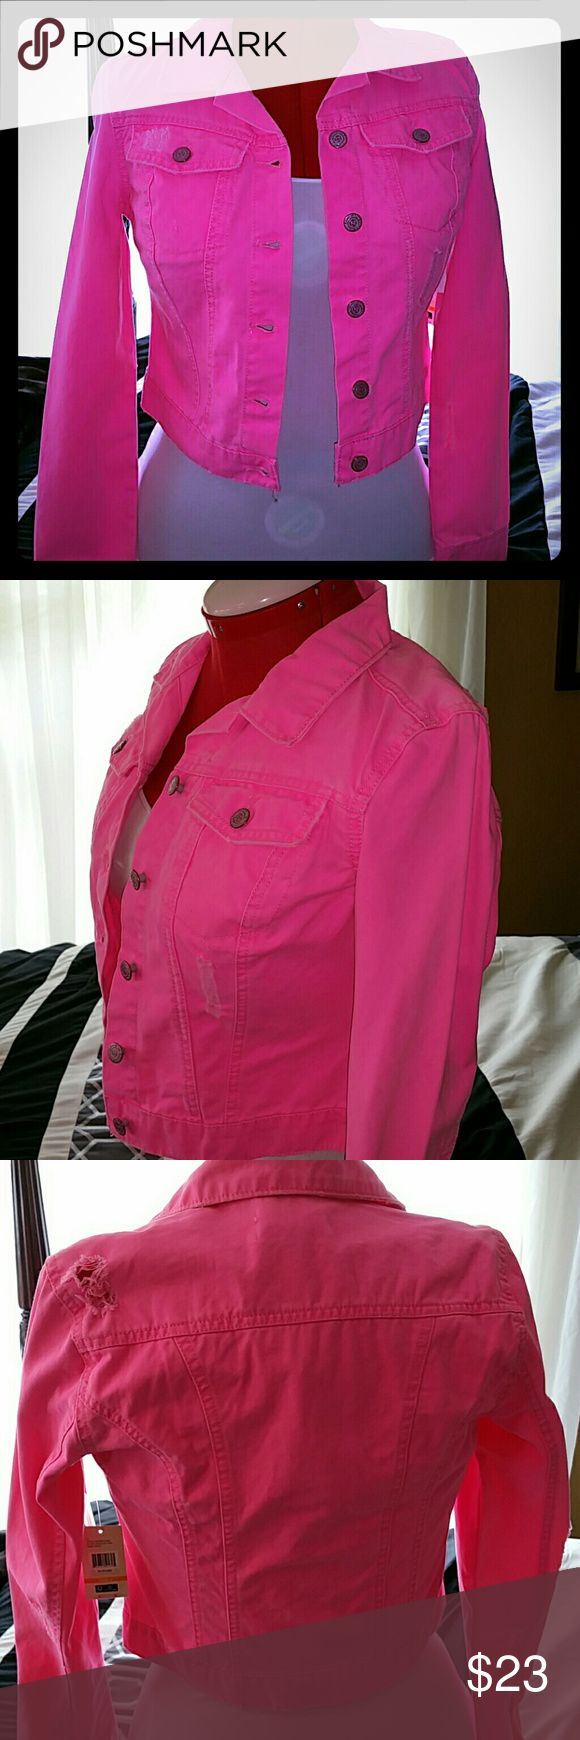 Neon Pink Distressed Jean Jacket Adorable distressed neon Pink Jean jacket.  Brand new with tags.  Never worn.  Junior Small but foods like a lady's small. The model in the photo is a women's medium-large. Brand is L.E.I. (Life Energy Intelligence). L.E.I. Jackets & Coats Jean Jackets